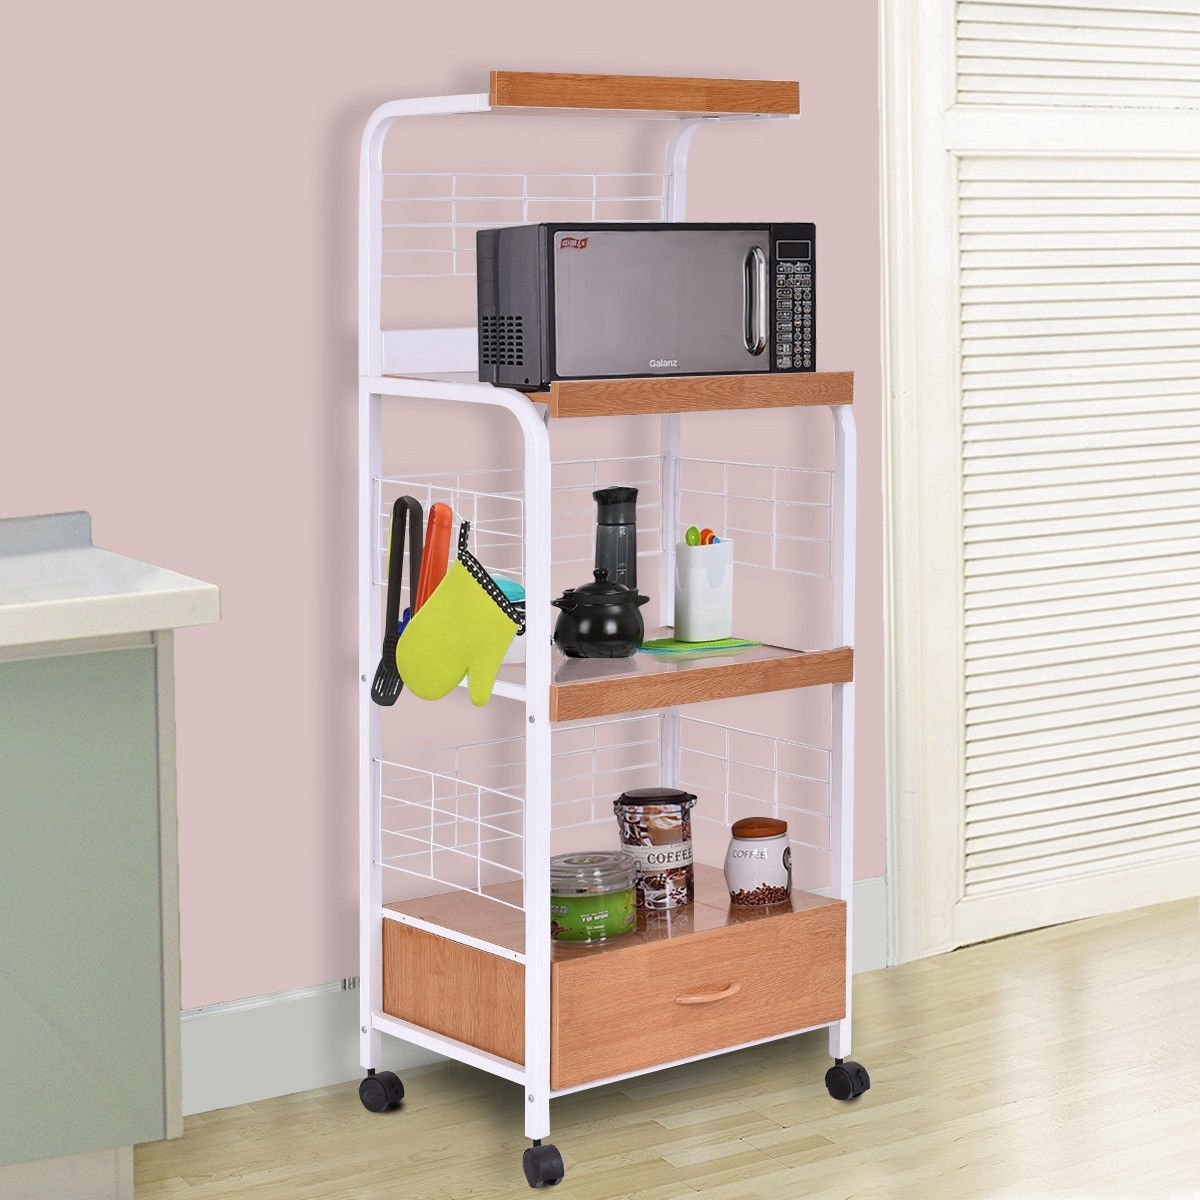 GJH One Bakers Rack Microwave Stand Rolling Kitchen Storage Cart w/Electric Outlet 62'' by GJH One (Image #2)